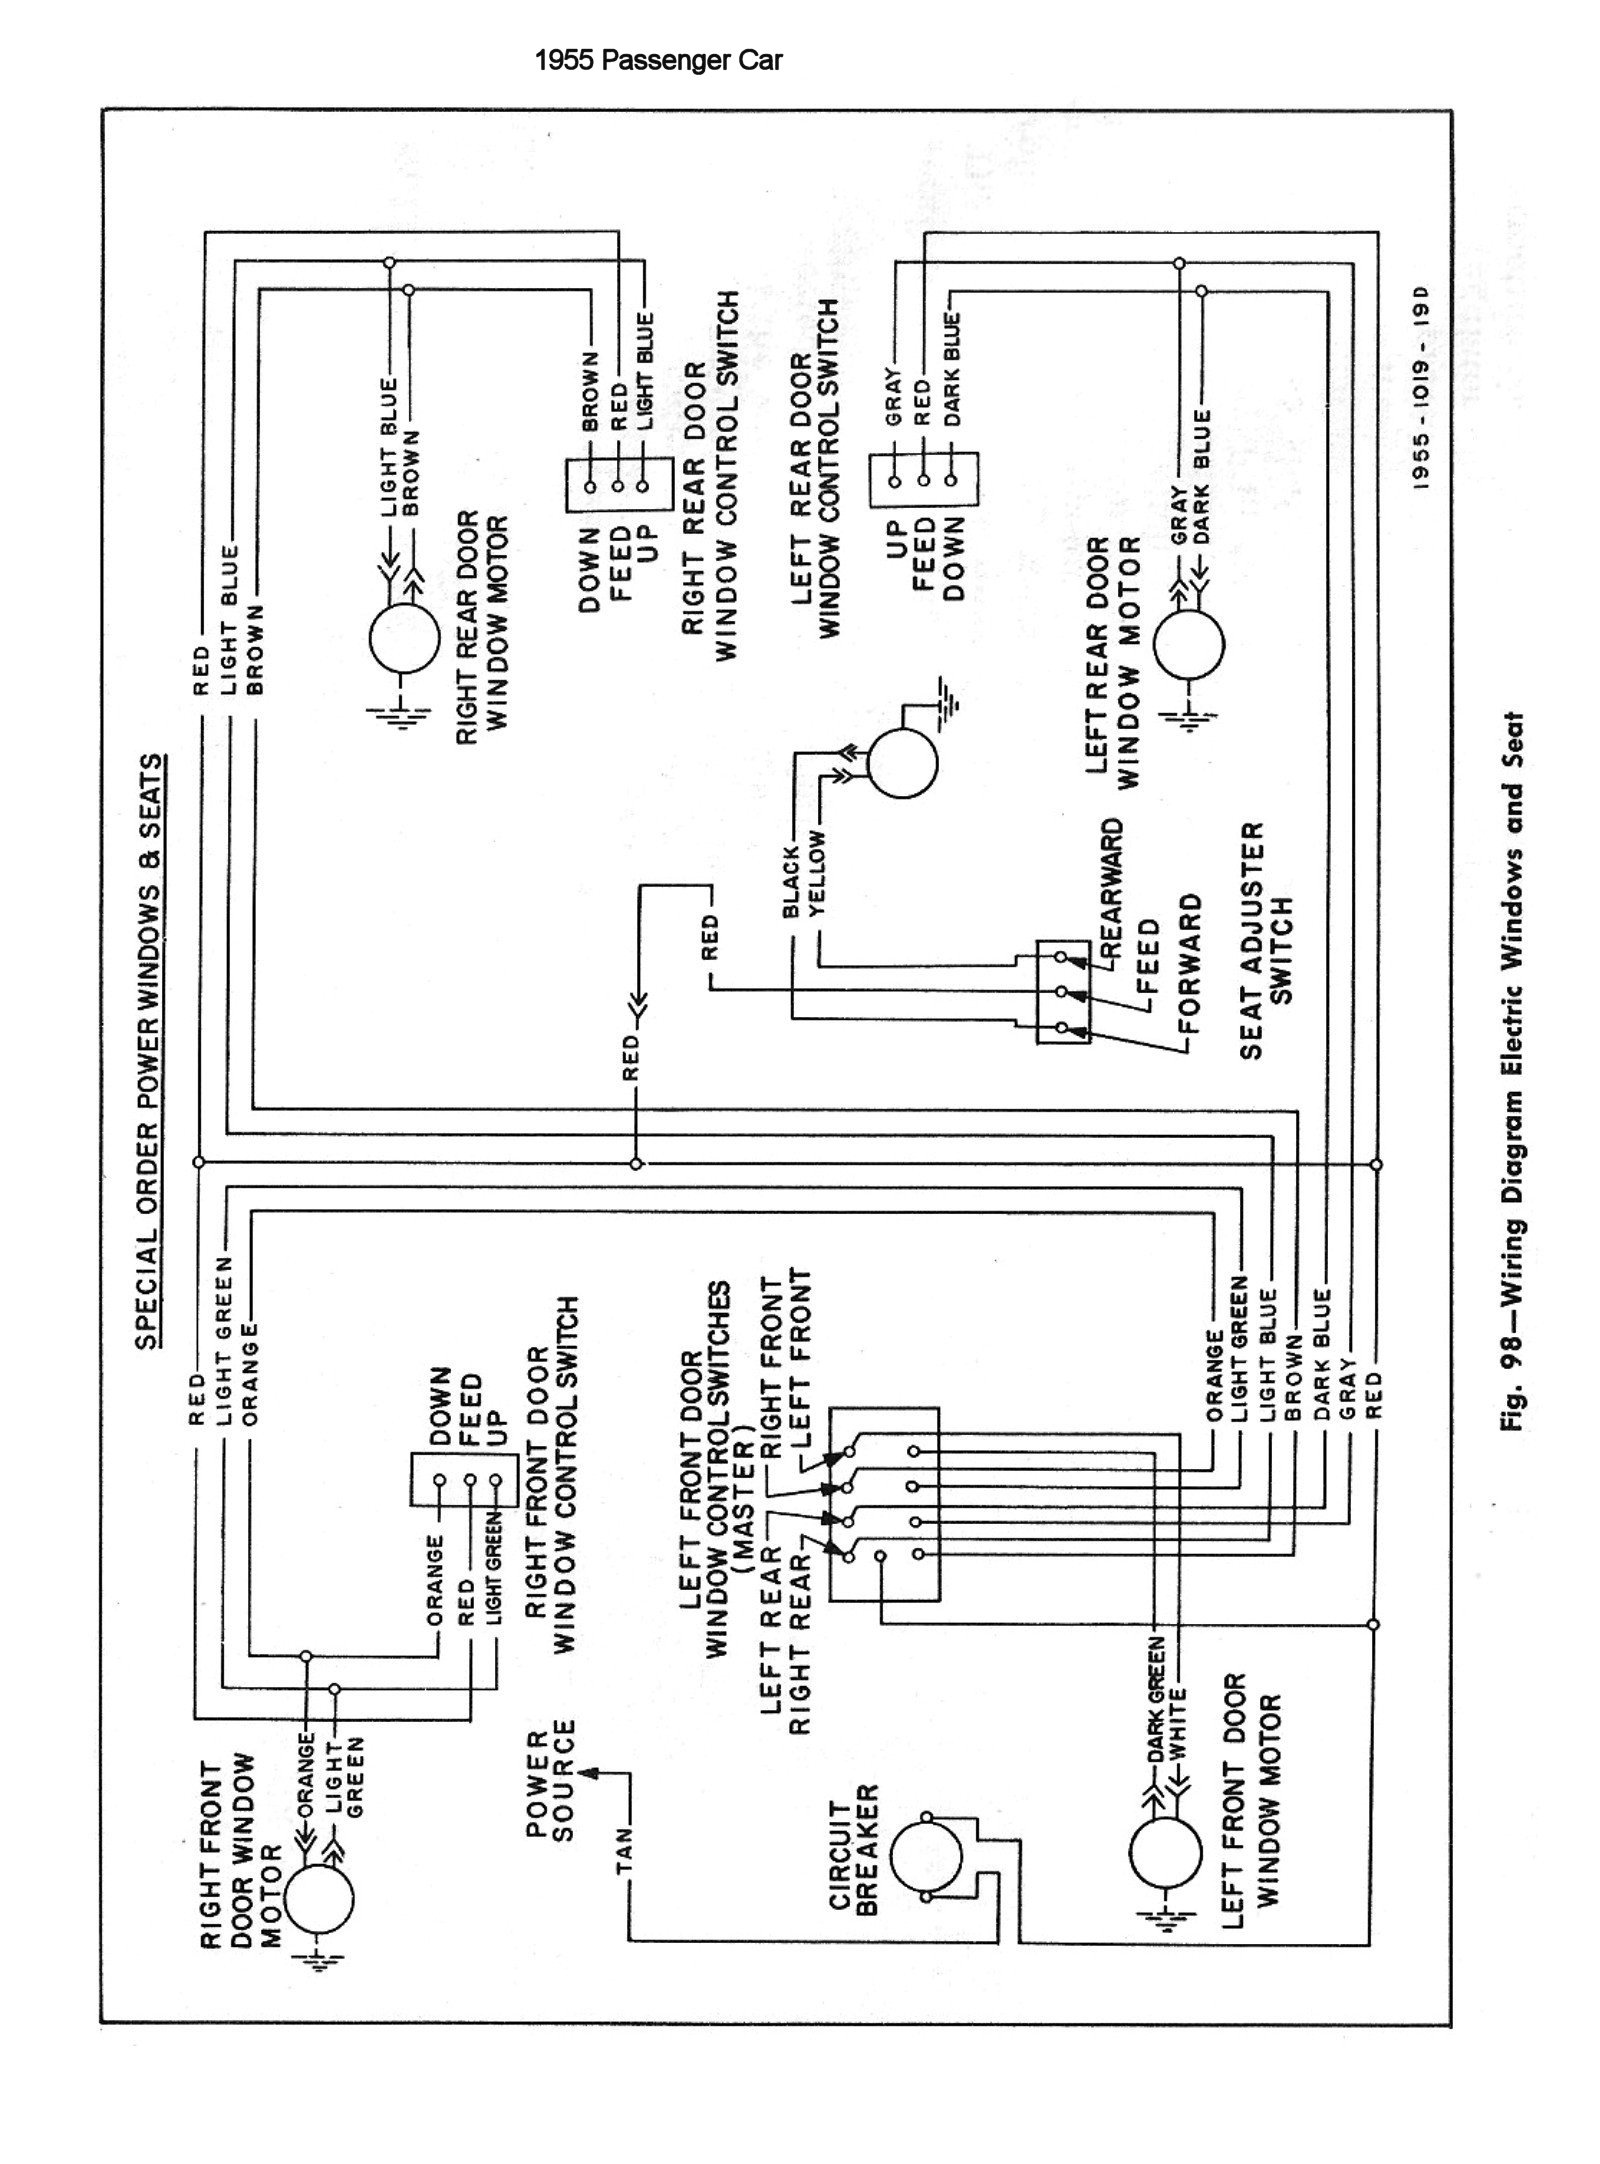 Chevy Wiring Diagrams La115 Wiring Diagram International L110 Wiring Diagram